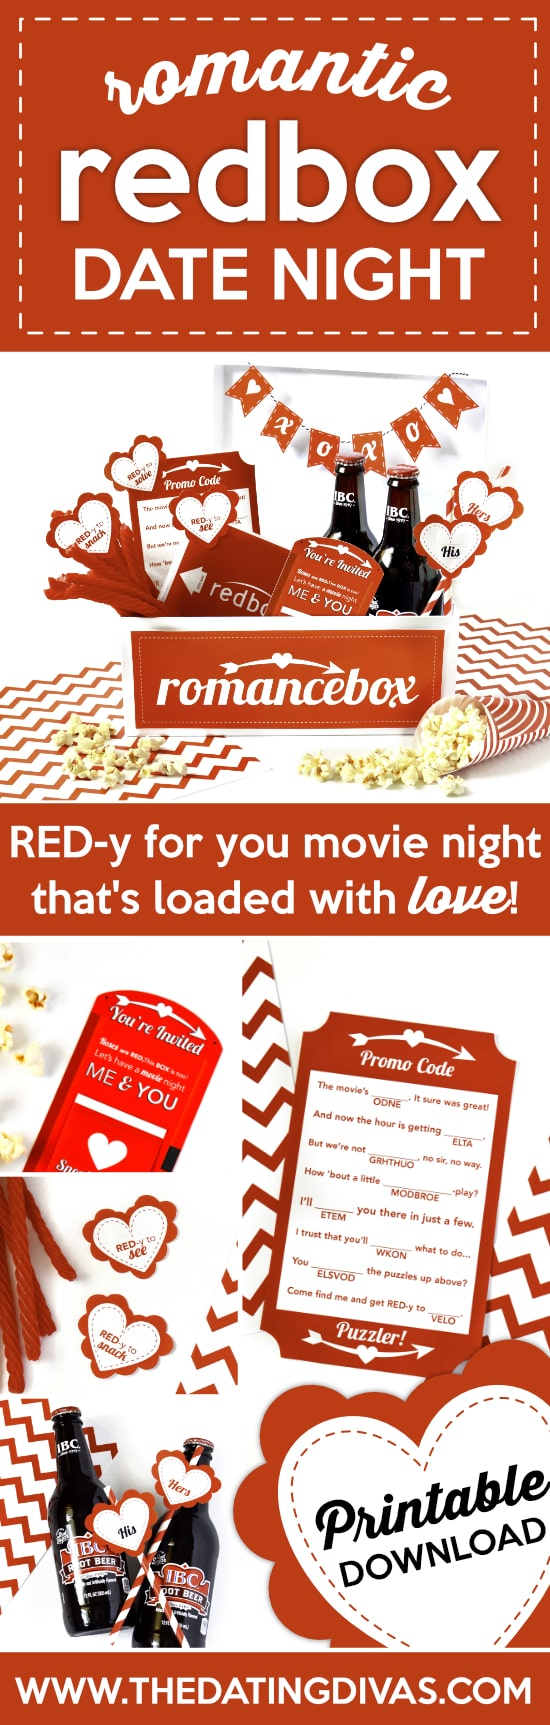 graphic about Redbox Printable Tags called Intimate Redbox Day Evening - The Relationship Divas